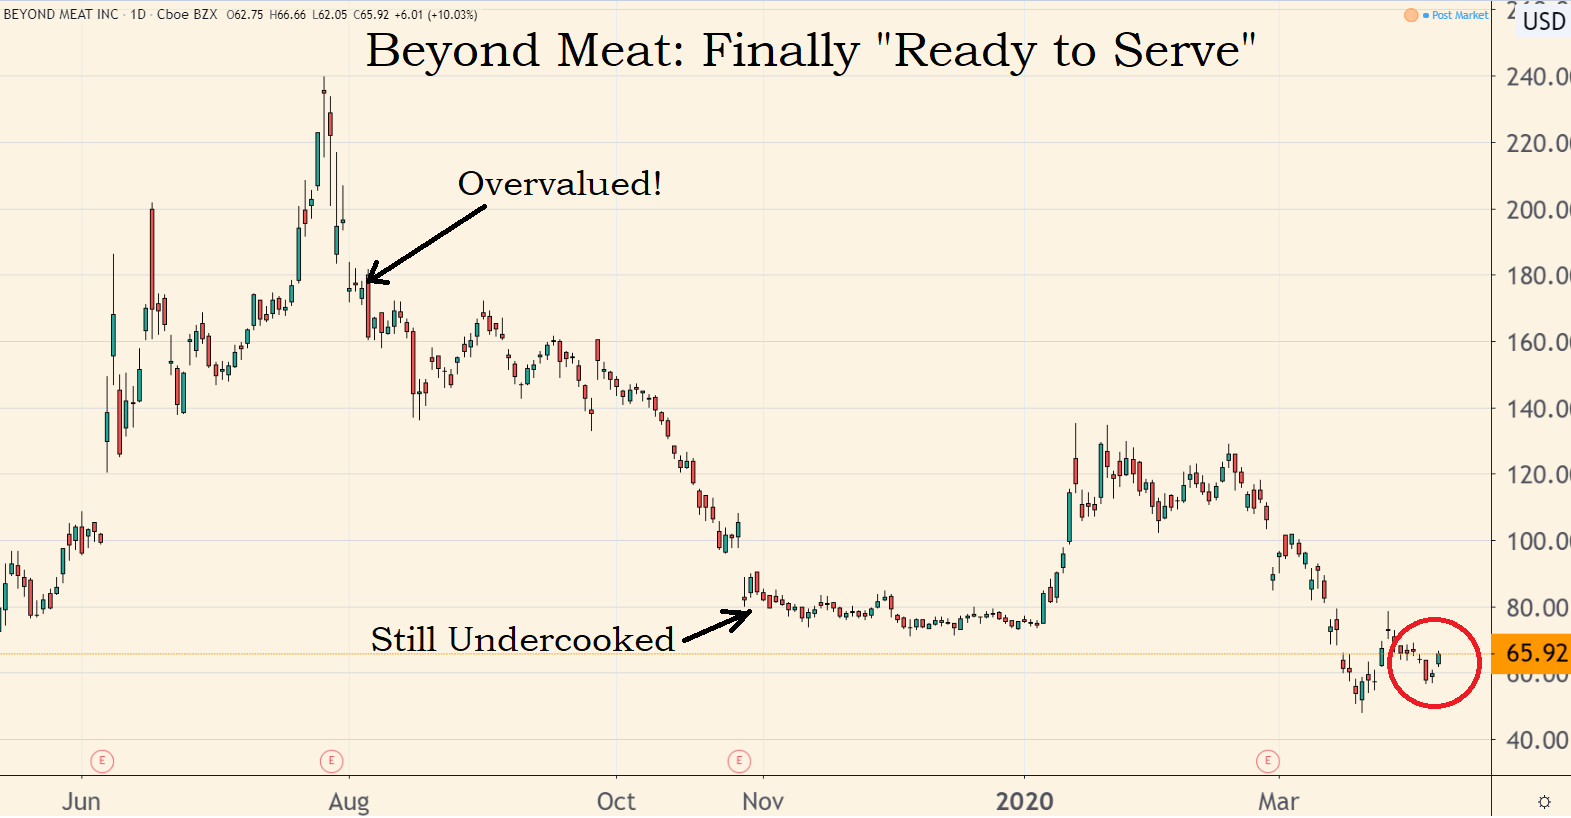 It's funny how Wall Street analysts hate a stock when it finally sinks to a reasonable price. But that's where we find ourselves with Beyond Meat these days.